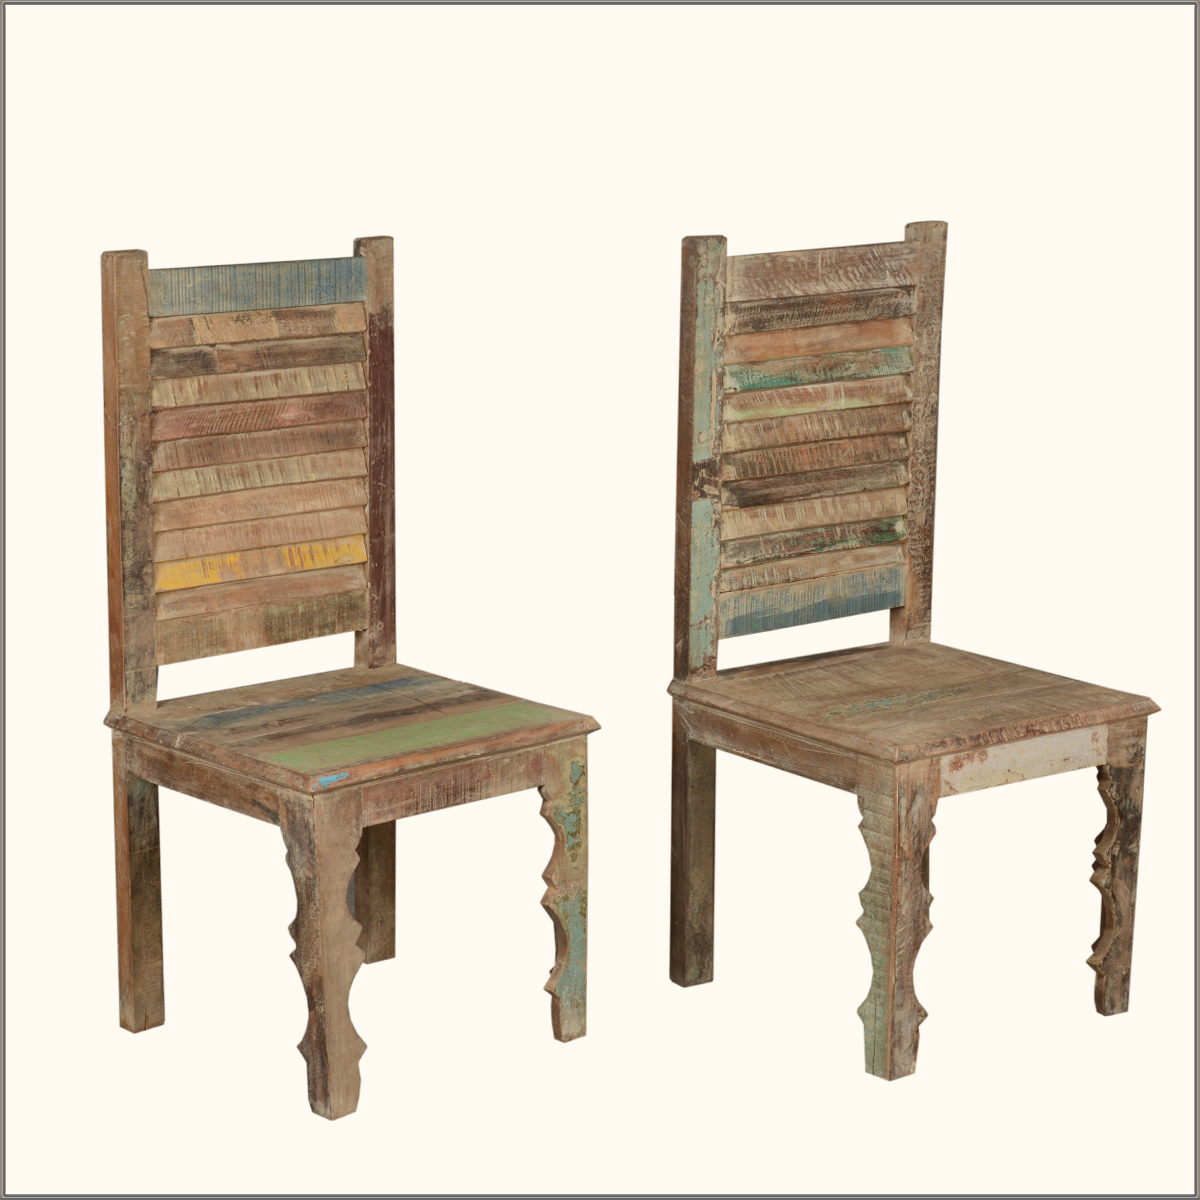 Colorful Wooden Chairs Rustic Distressed Reclaimed Wood Multi Color Kitchen